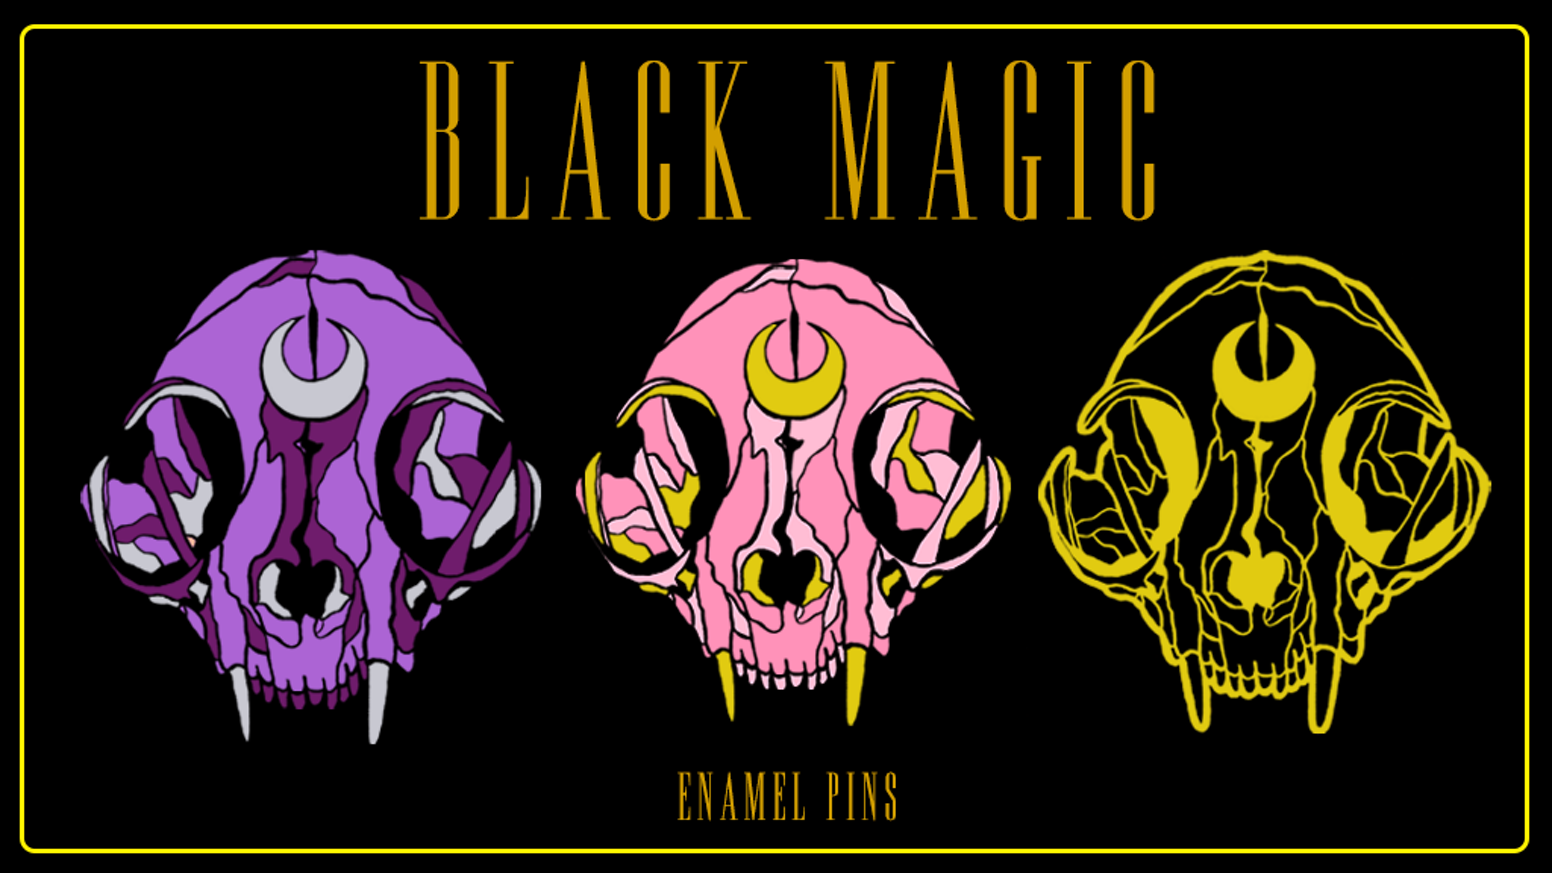 Witchy, magical cat skull hard enamel pins in purple, pink, or gold/black to add to your collection or decorate your favorite jacket!